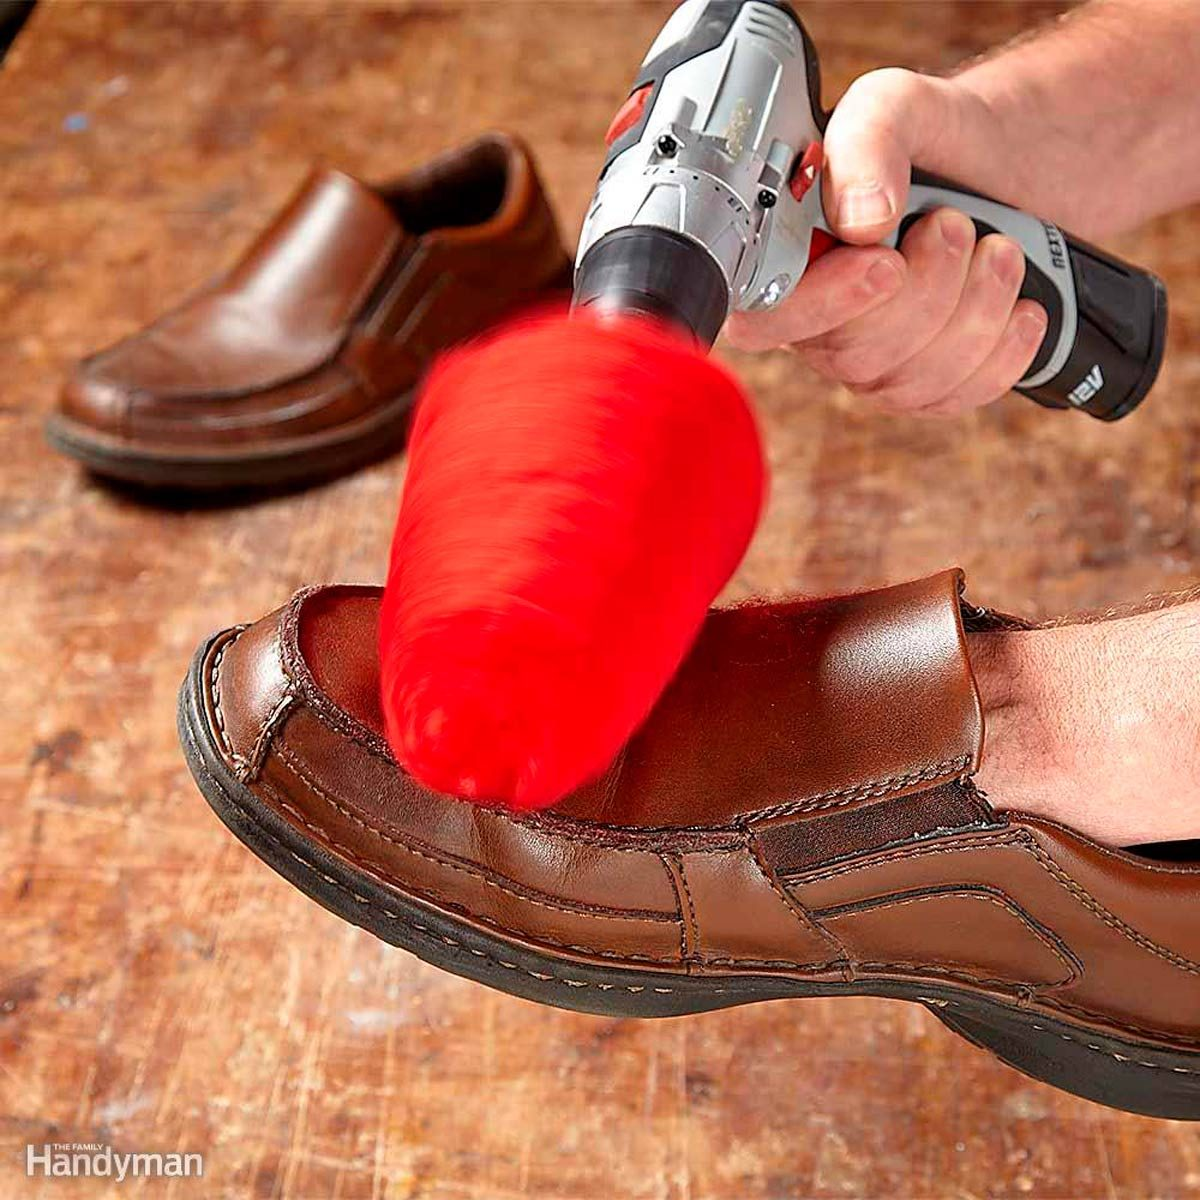 The 10 Most Incredible Drill Hacks You Need to Know